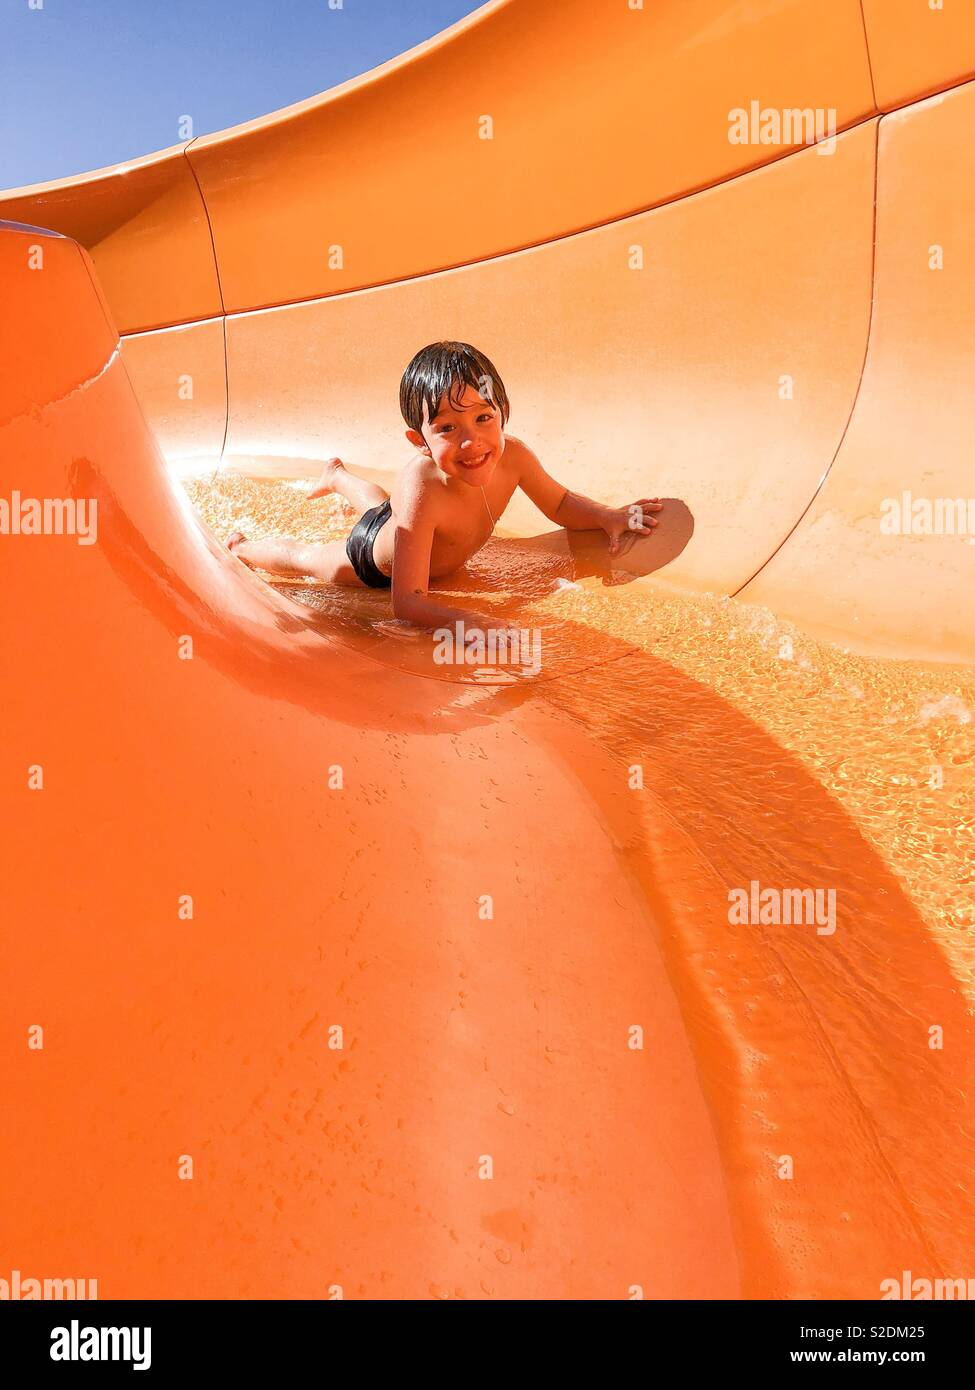 Boy going down on water slider - Stock Image